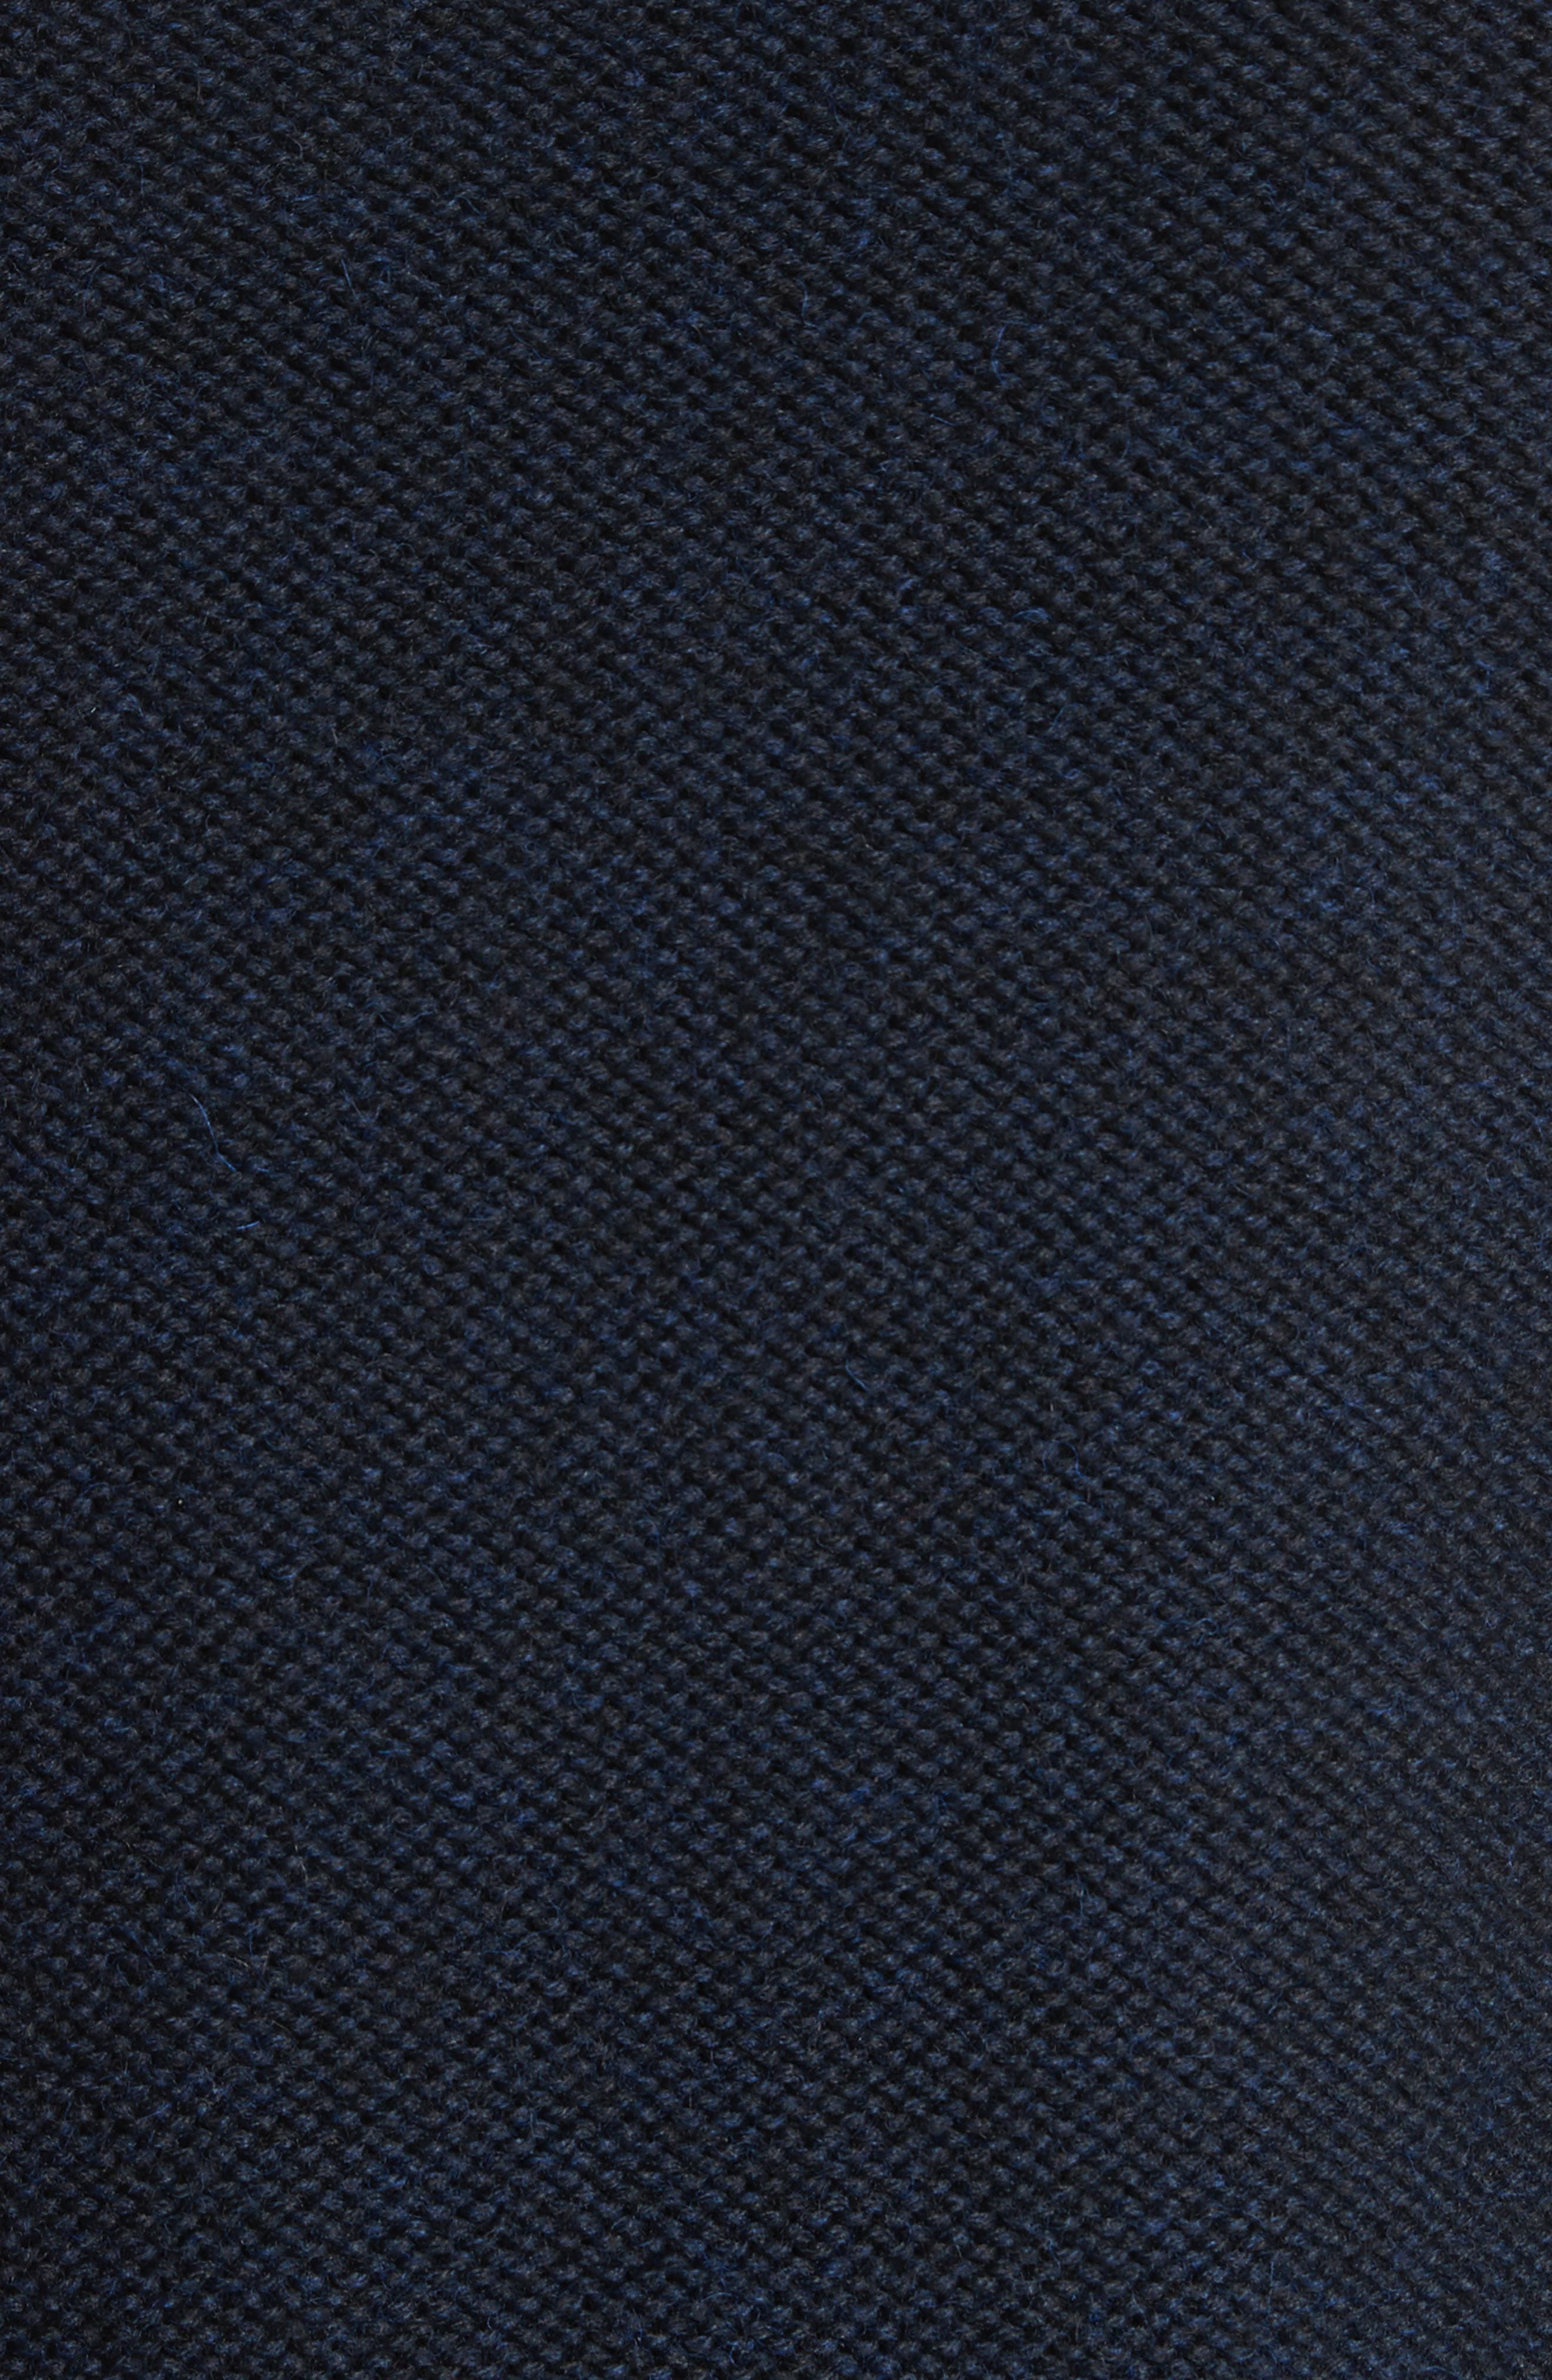 Mixed Knit Wool Sweater,                             Alternate thumbnail 5, color,                             Navy